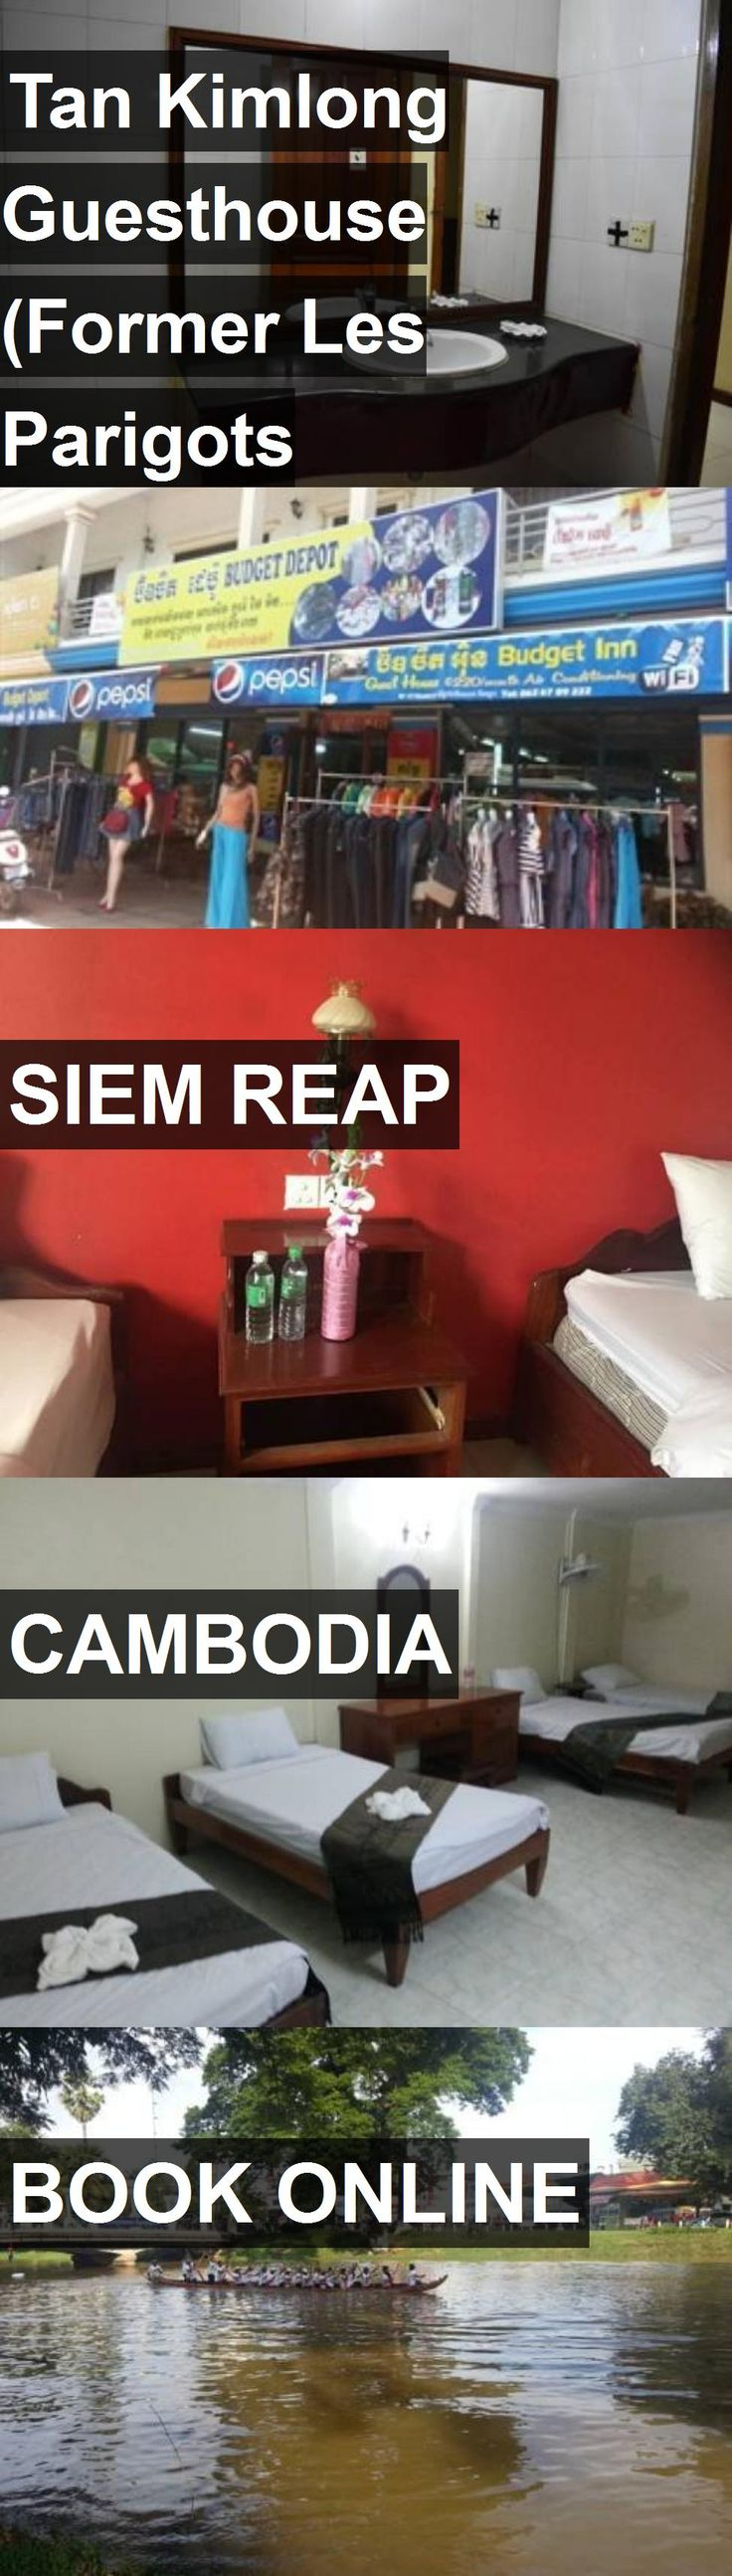 Hotel Tan Kimlong Guesthouse (Former Les Parigots Guesthouse) in Siem Reap, Cambodia. For more information, photos, reviews and best prices please follow the link. #Cambodia #SiemReap #travel #vacation #hotel